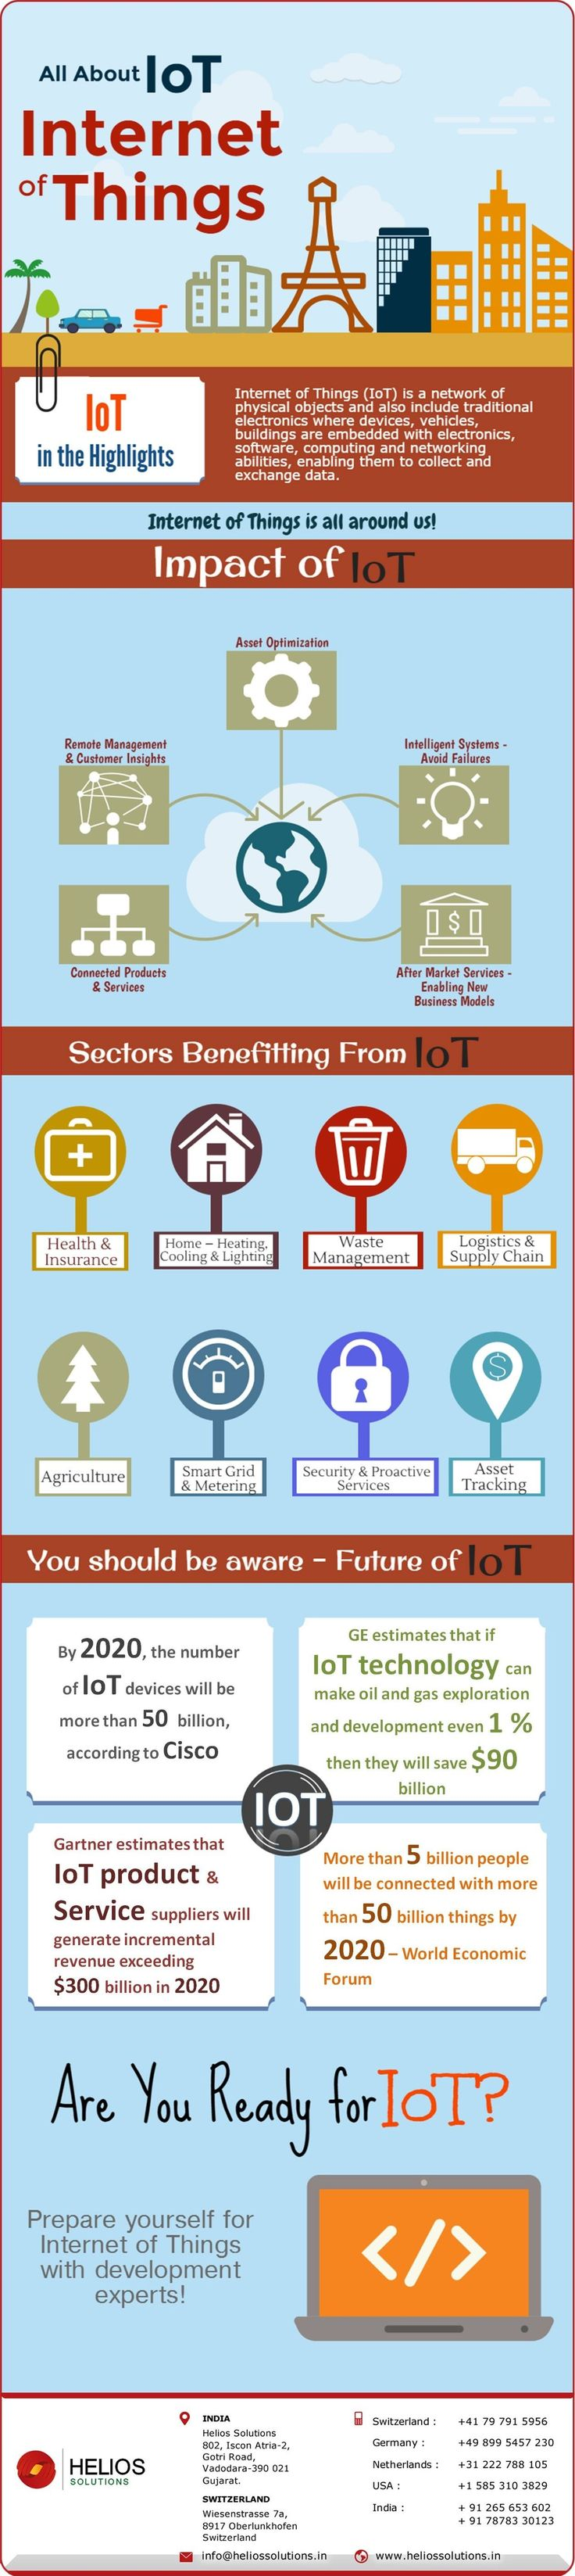 All about IoT - Internet of Things